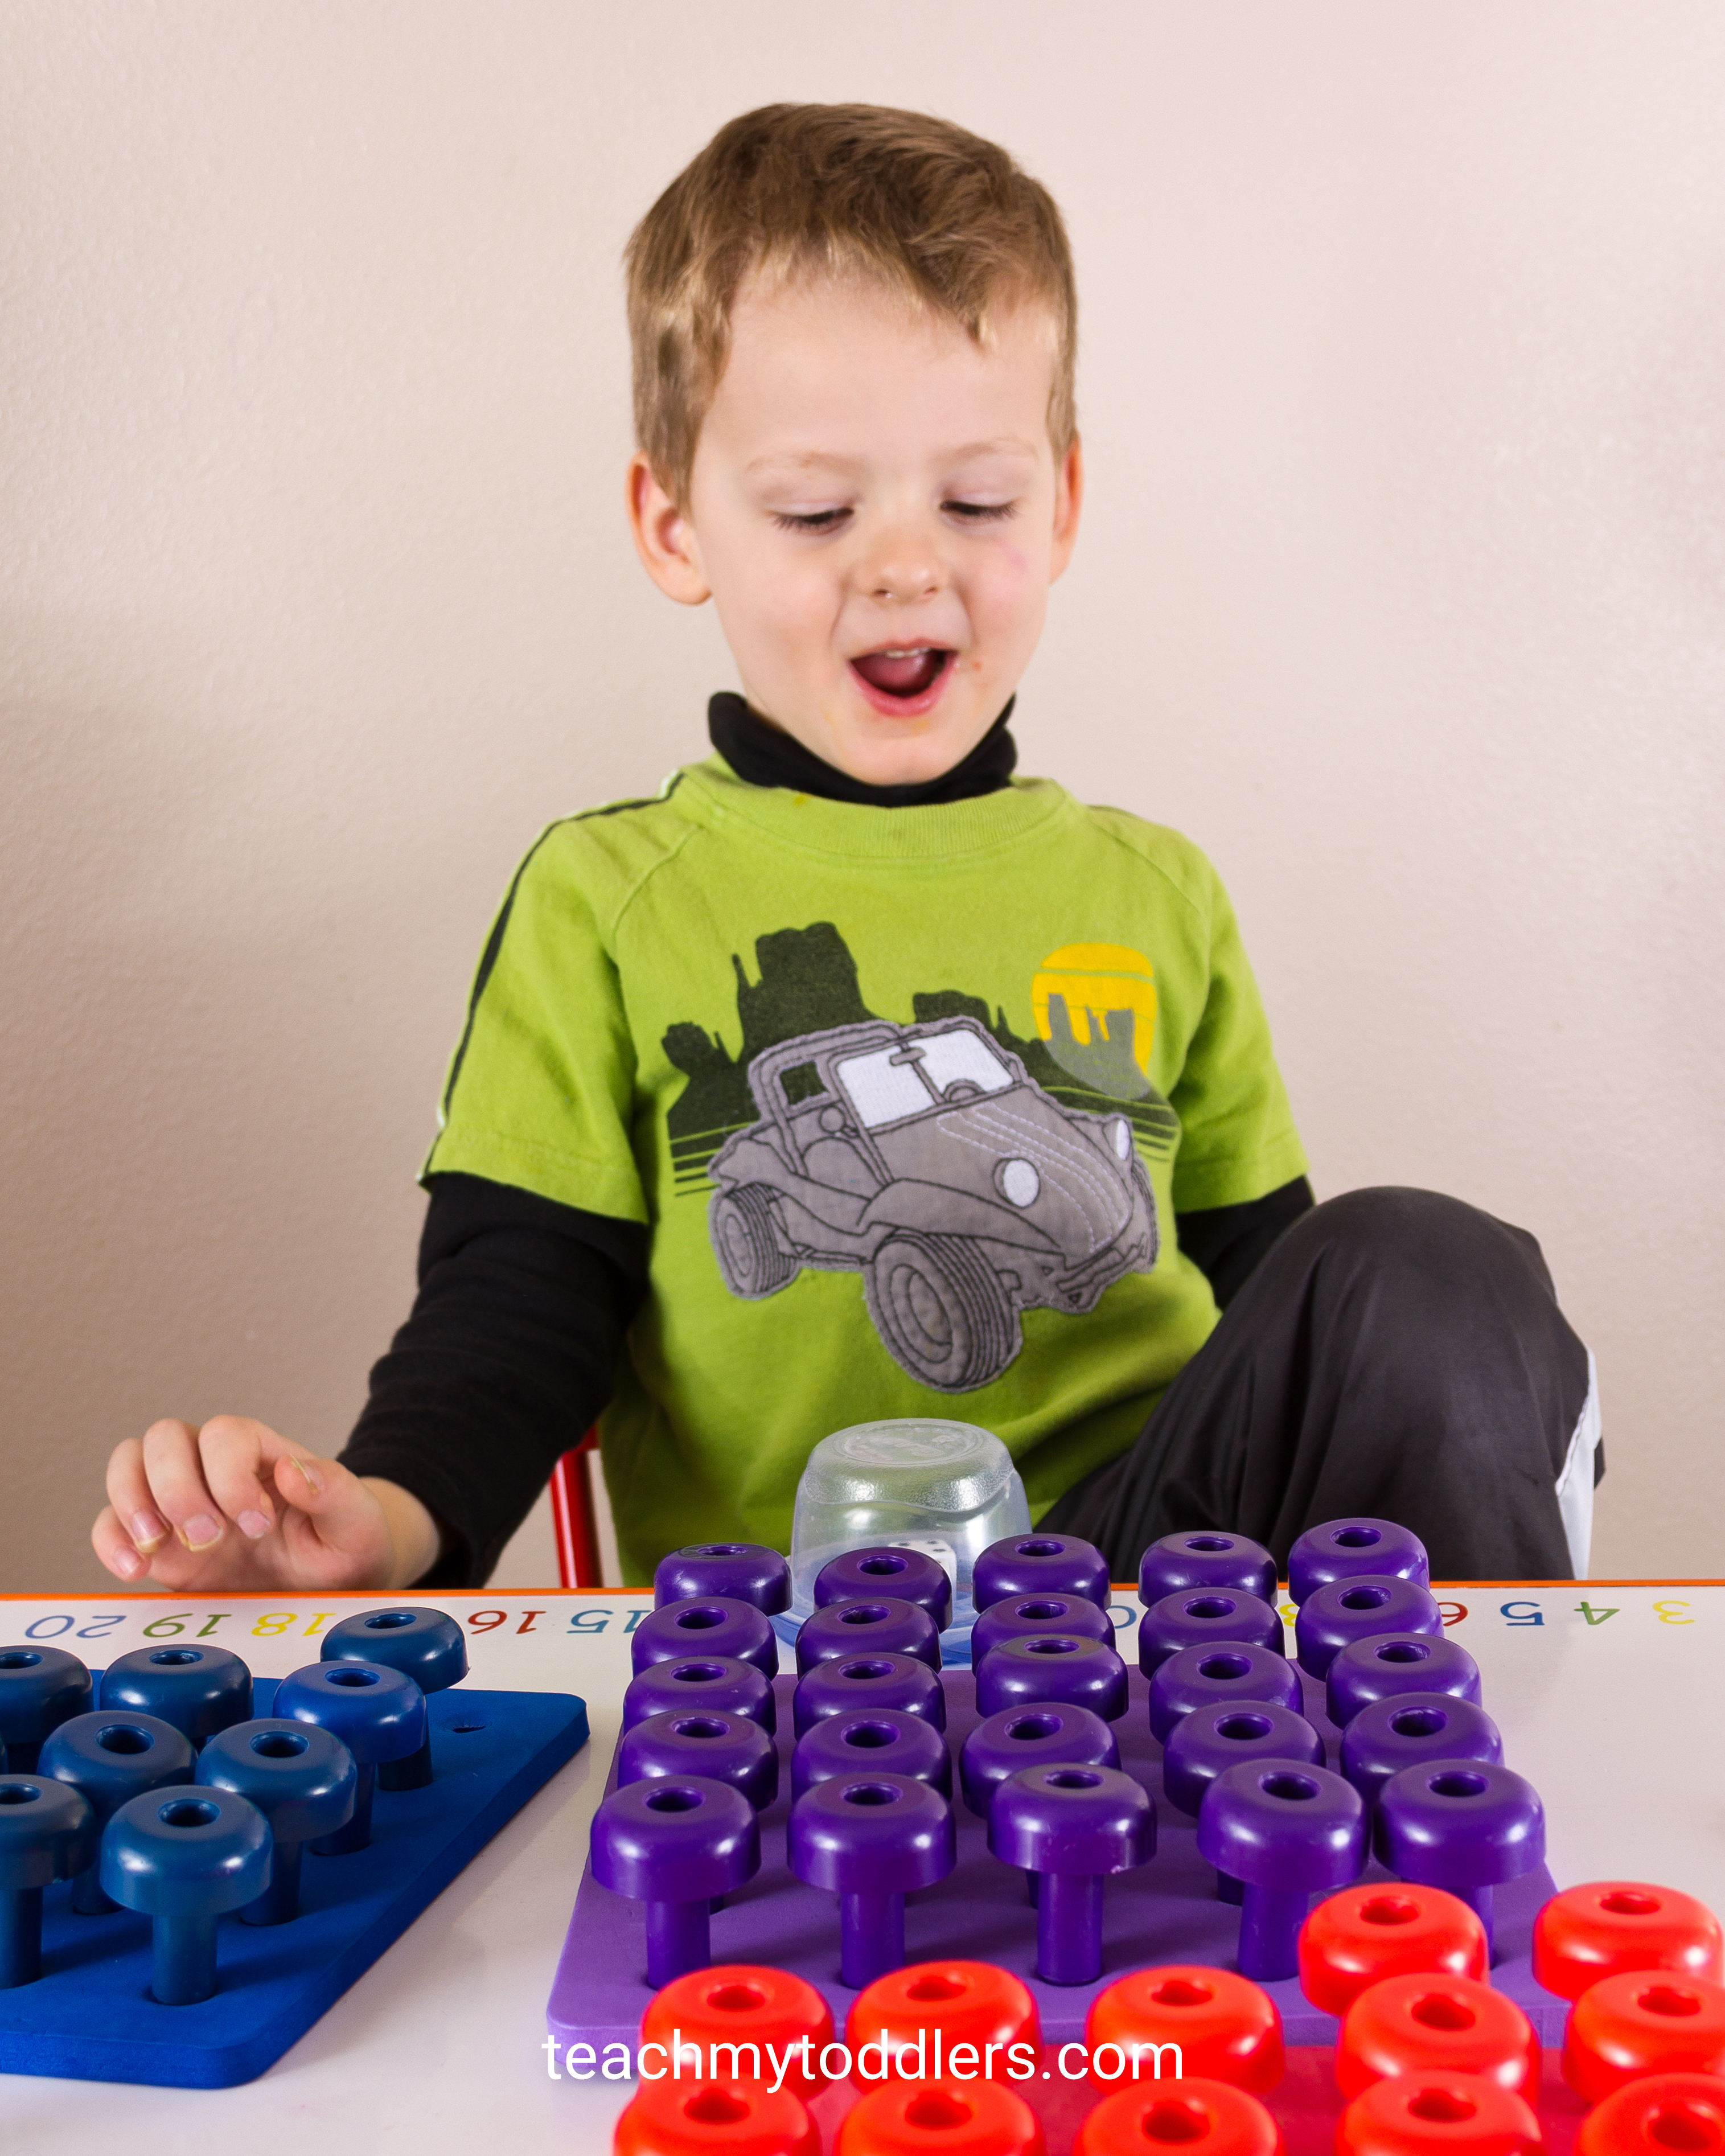 Preschool ages can learn colors too with these pegs and peg boards